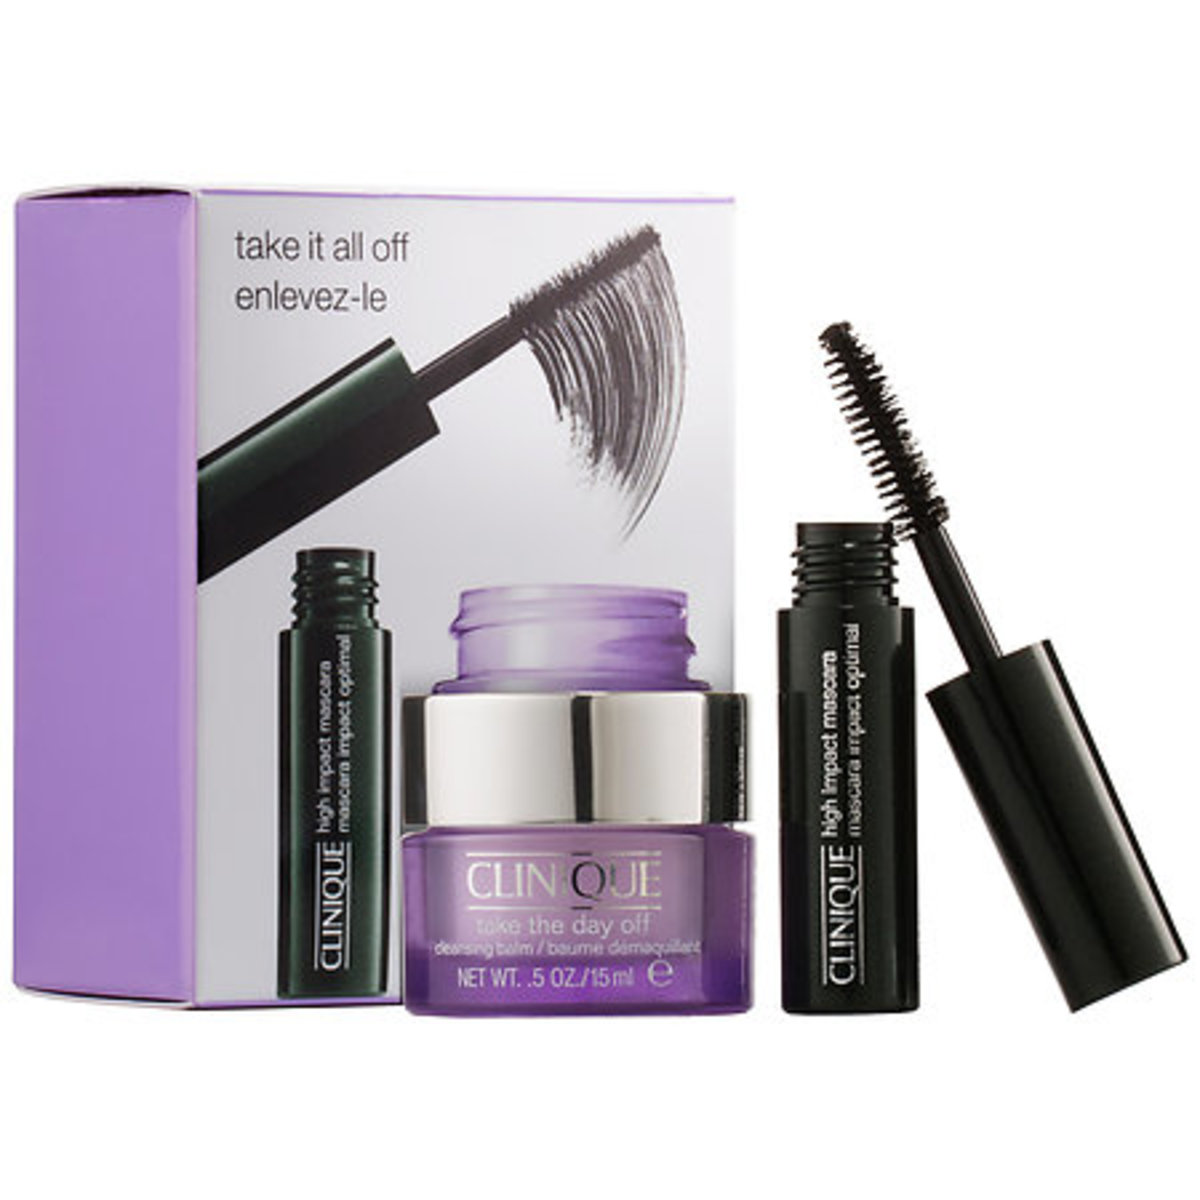 Clinique Take It All Off Duo